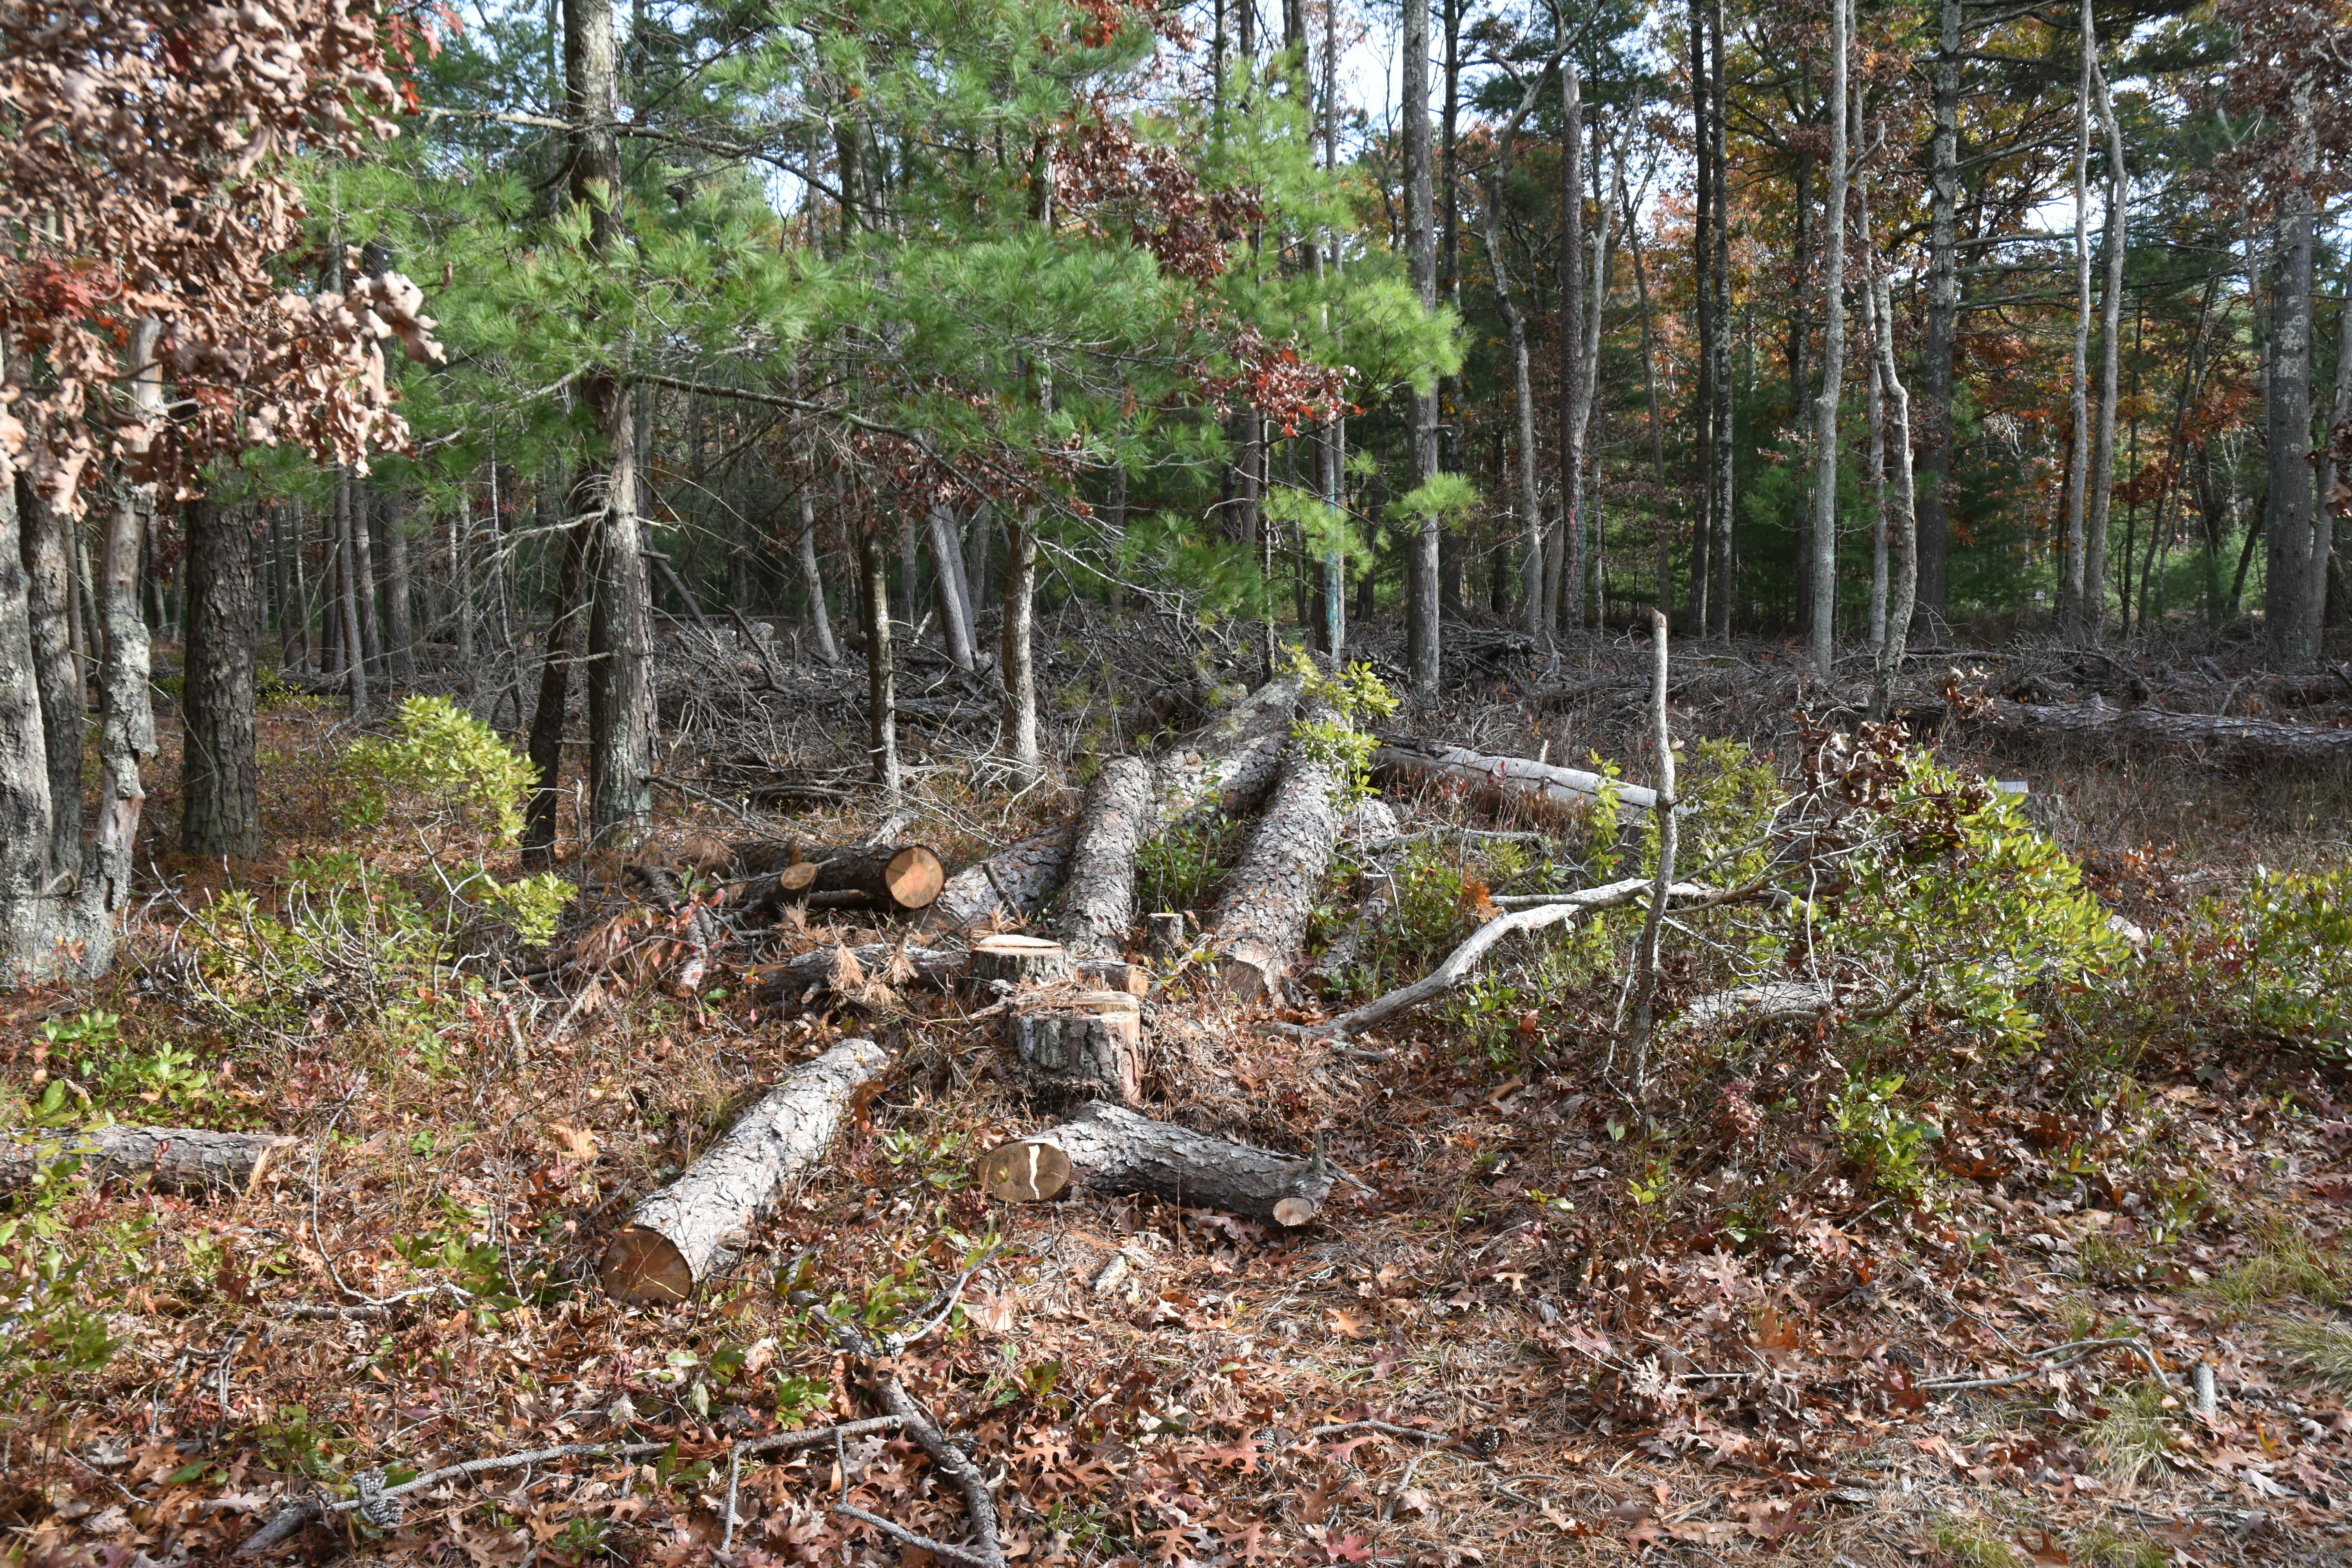 Trees that were cut down two years ago because they had been infested with southern pine beetles remain at 185 Swamp Road in Northwest Woods, East Hampton, prompting the owner to file suit claiming her property has been devalued.